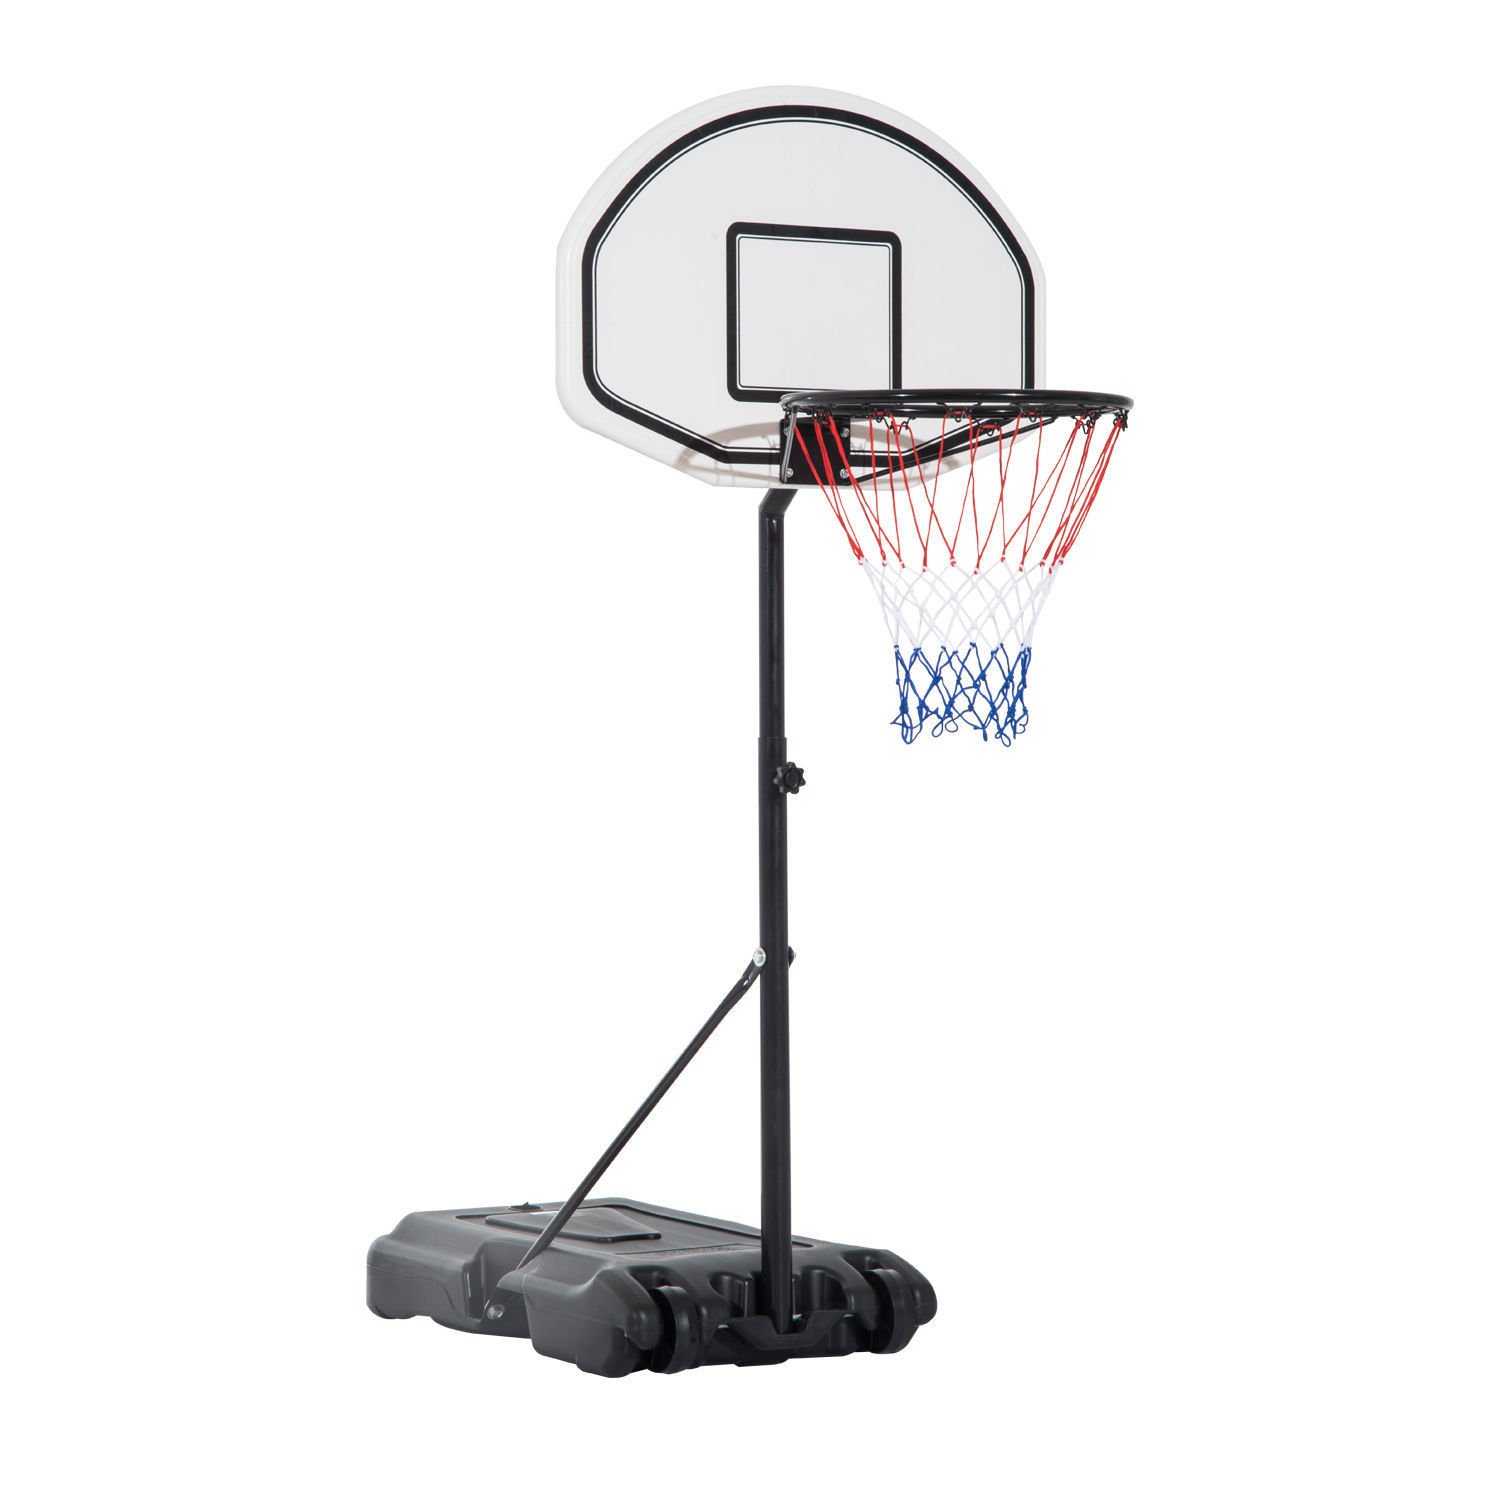 Poolside Basketball Hoop System Pool Water Sport Game Play Outdoor Adjustable by SpiritOne (Image #4)